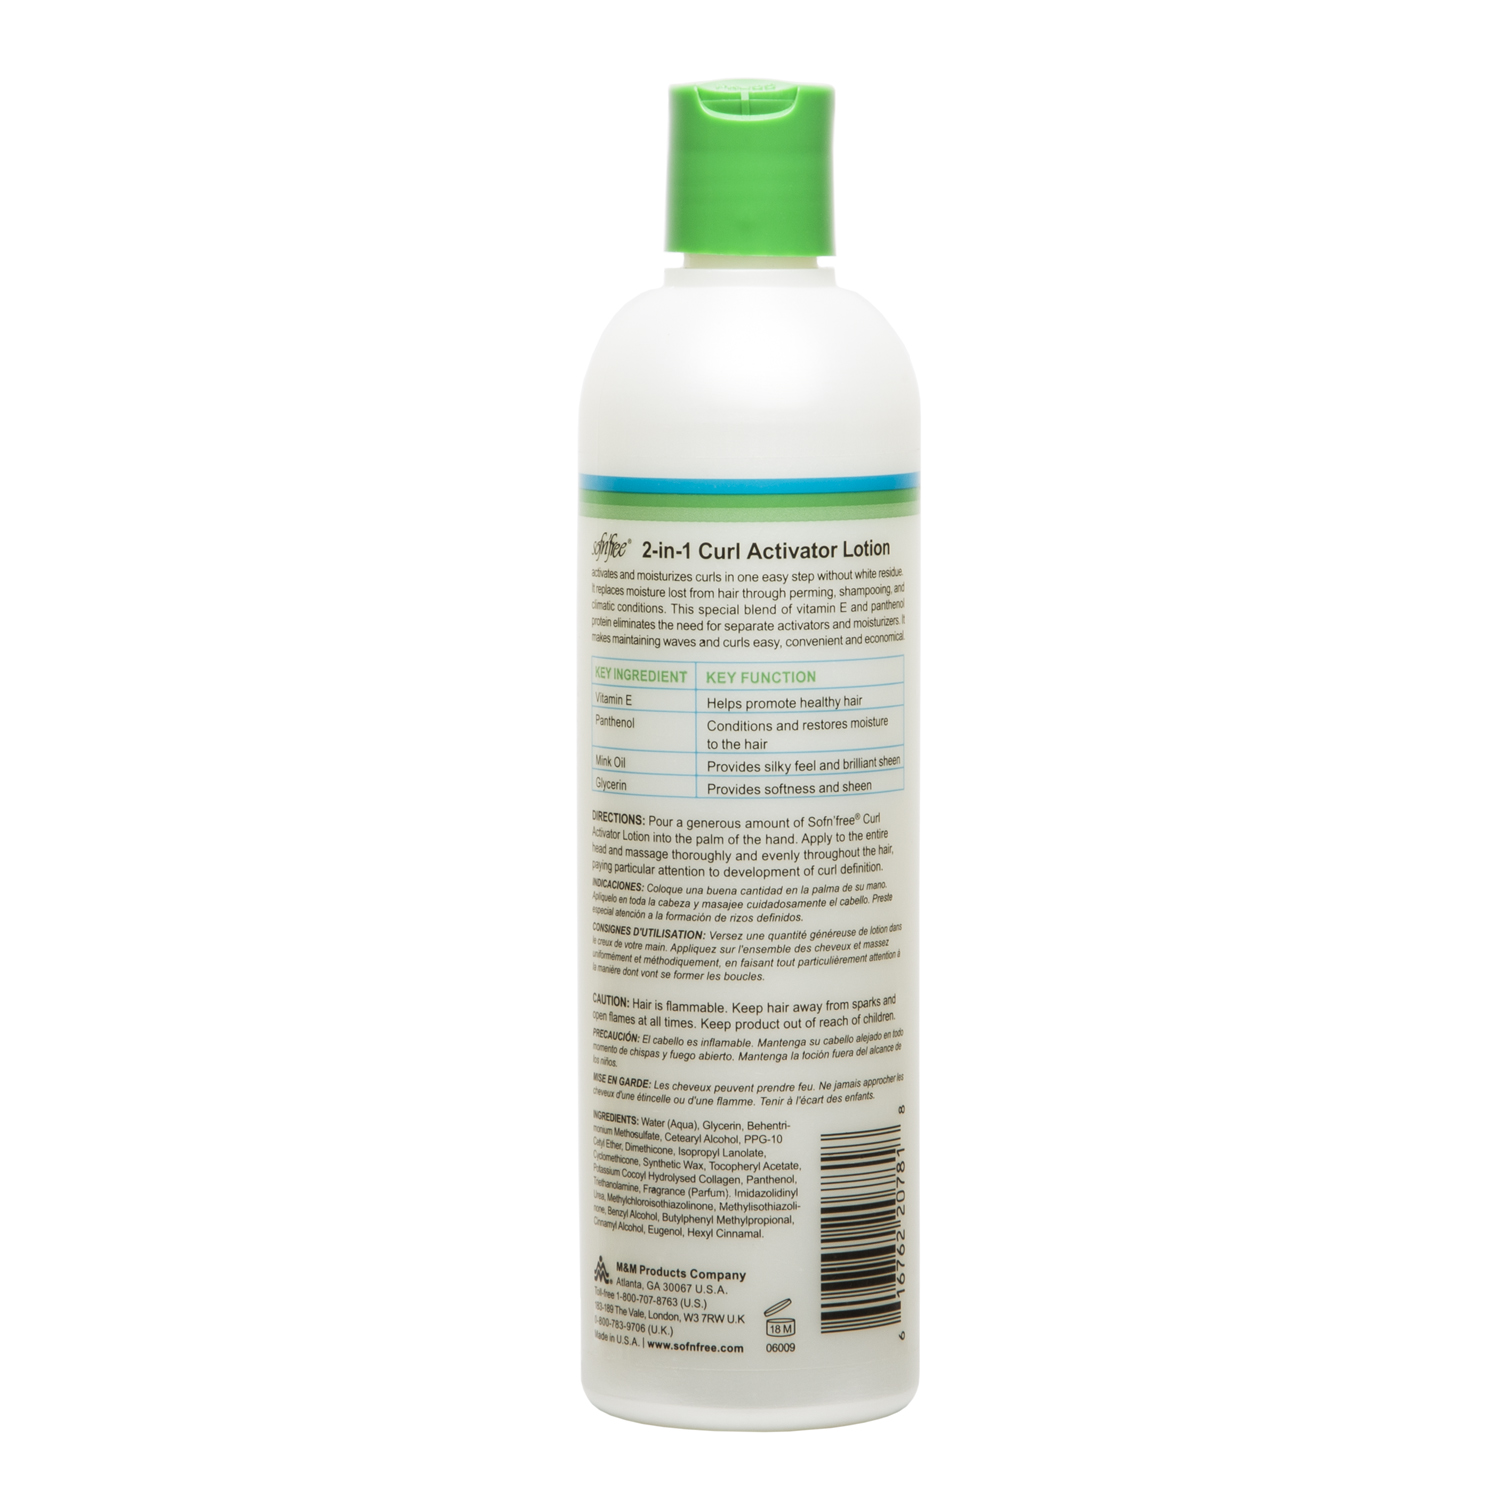 53844c33130 Details about Sofn'Free Healthy Hair 2 In 1 Curl Activator Moisturizing  Lotion 12 oz Pk of 2